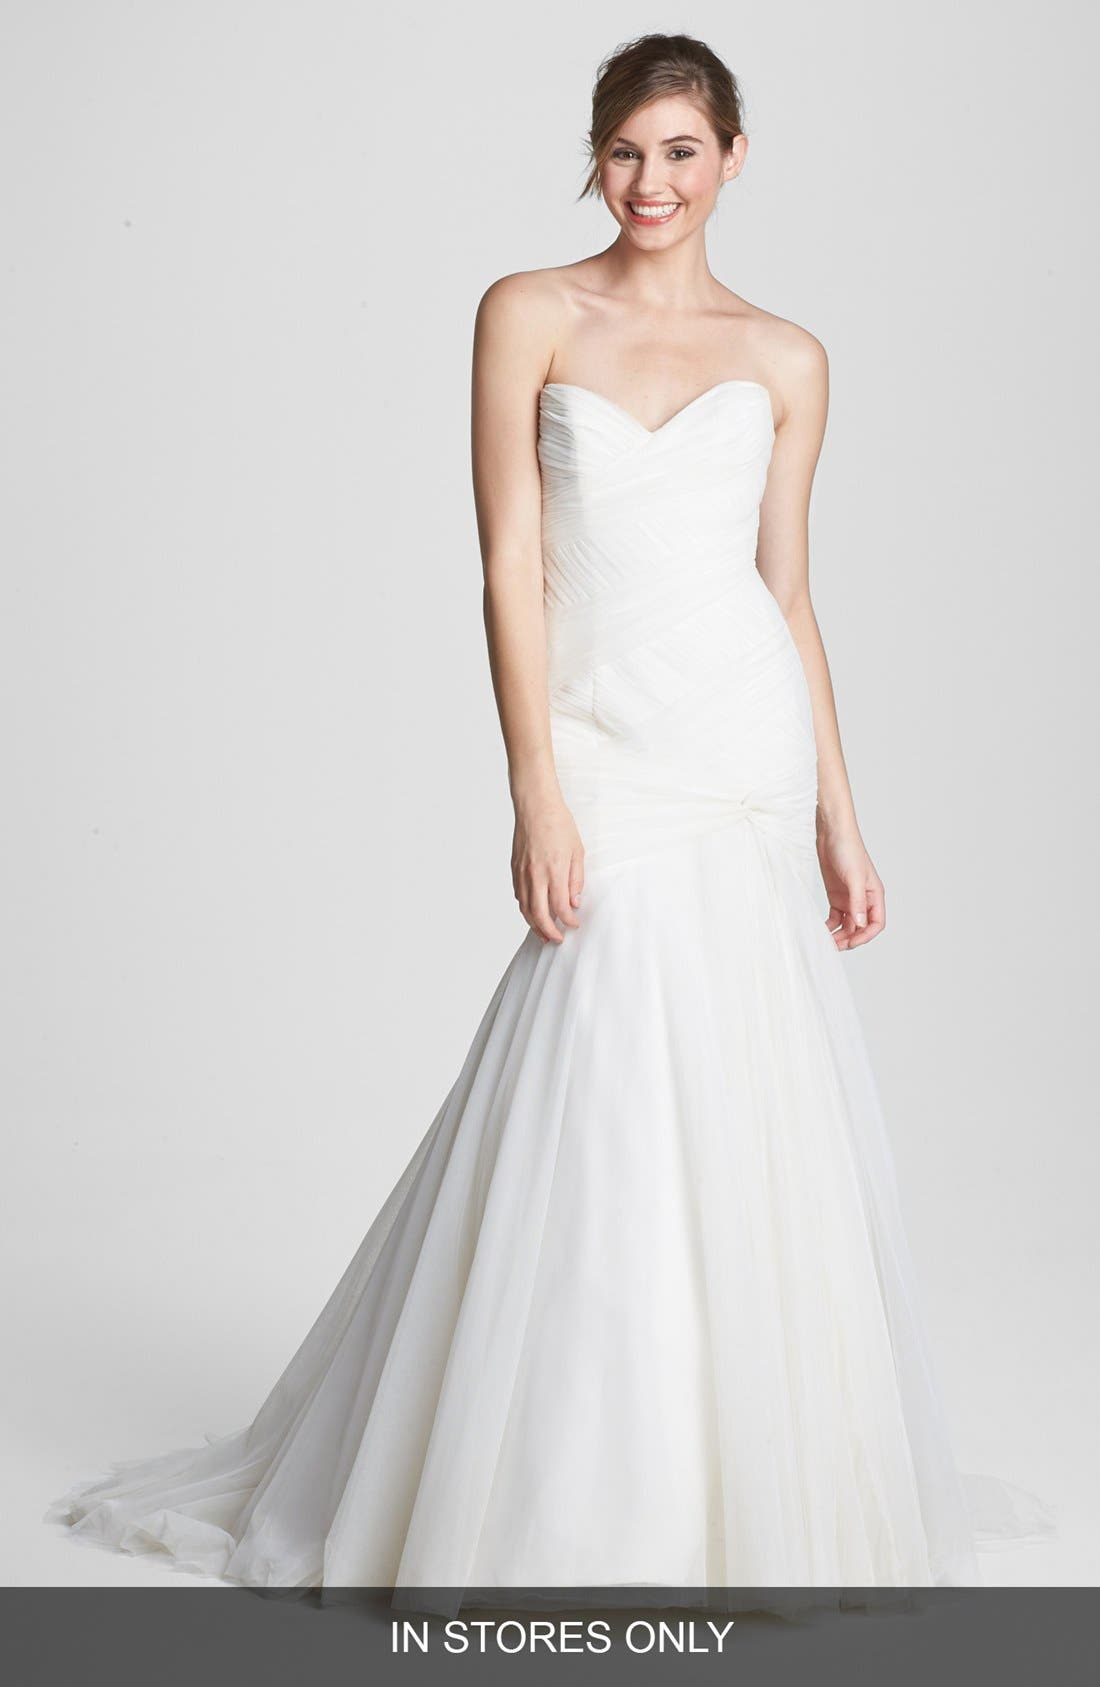 Main Image - Anne Barge 'Aimee' Ruched Mesh Mermaid Dress (In Stores Only)